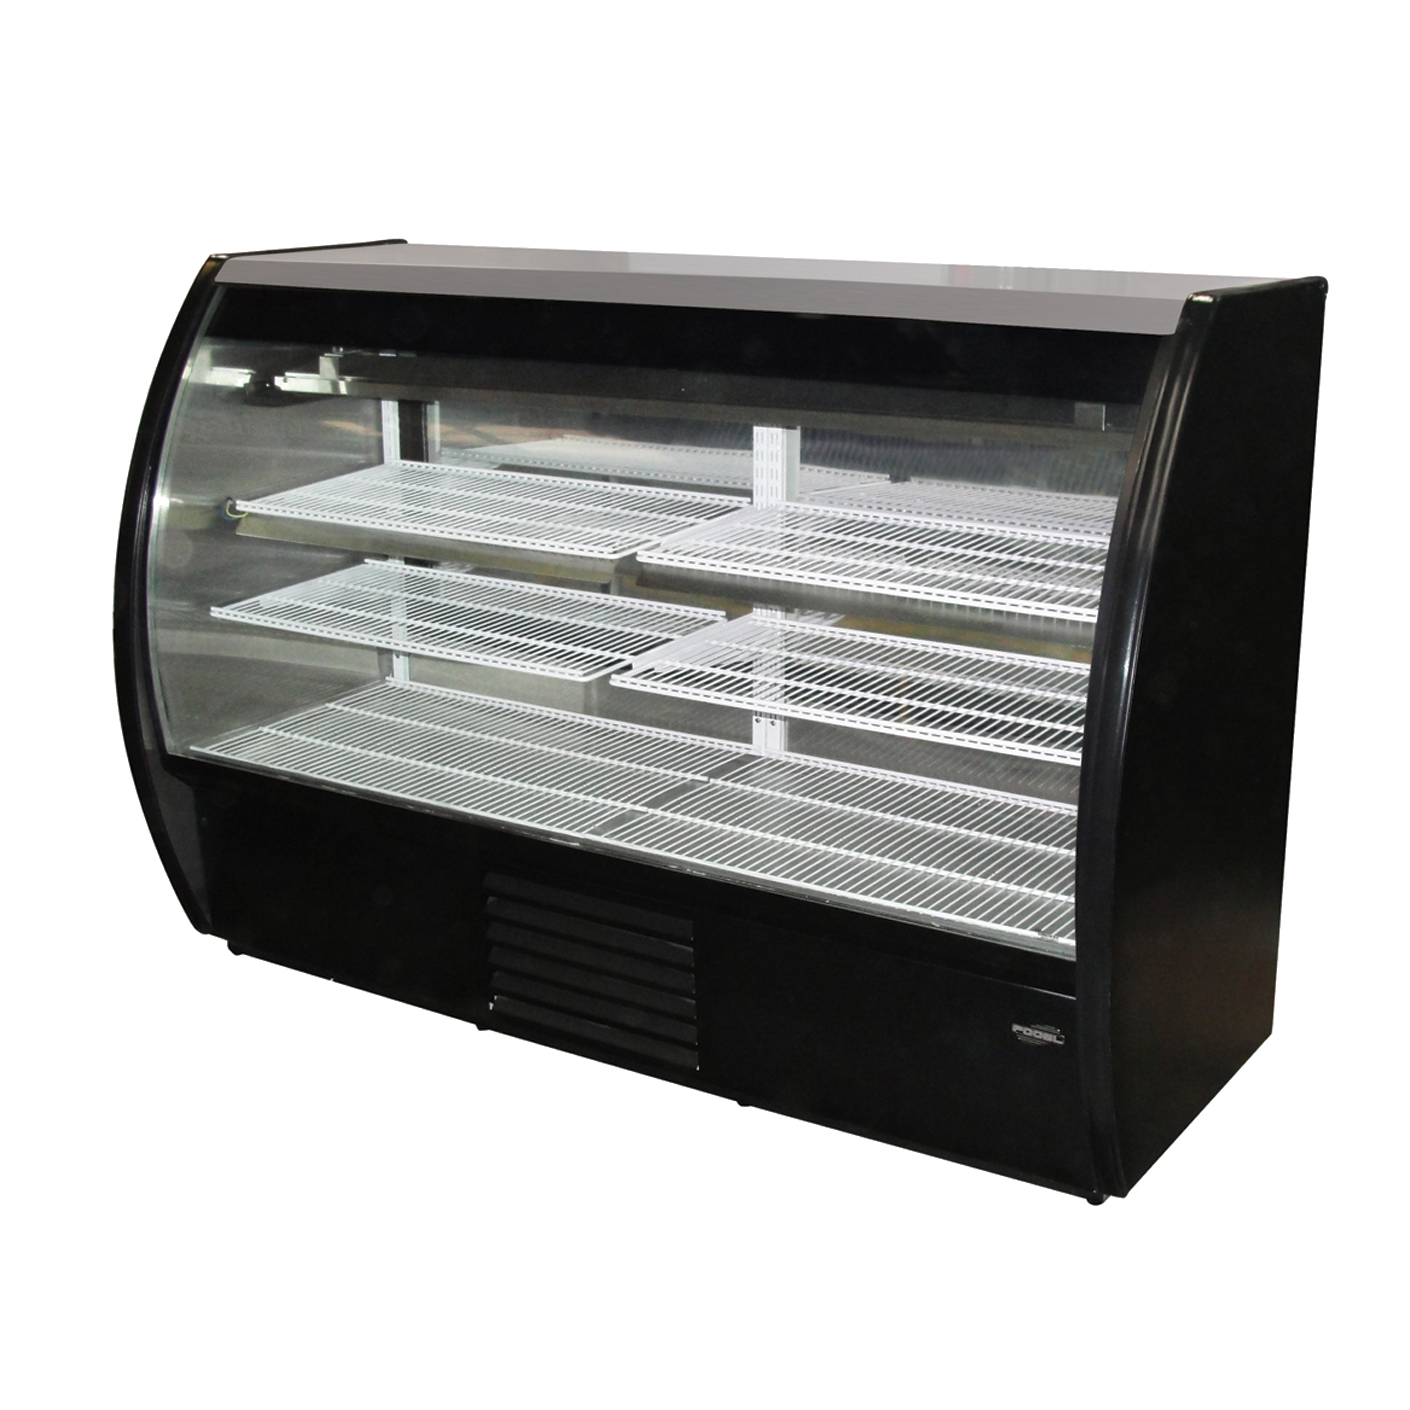 Fogel USA MIRAGE-6-DC-G display case, refrigerated deli